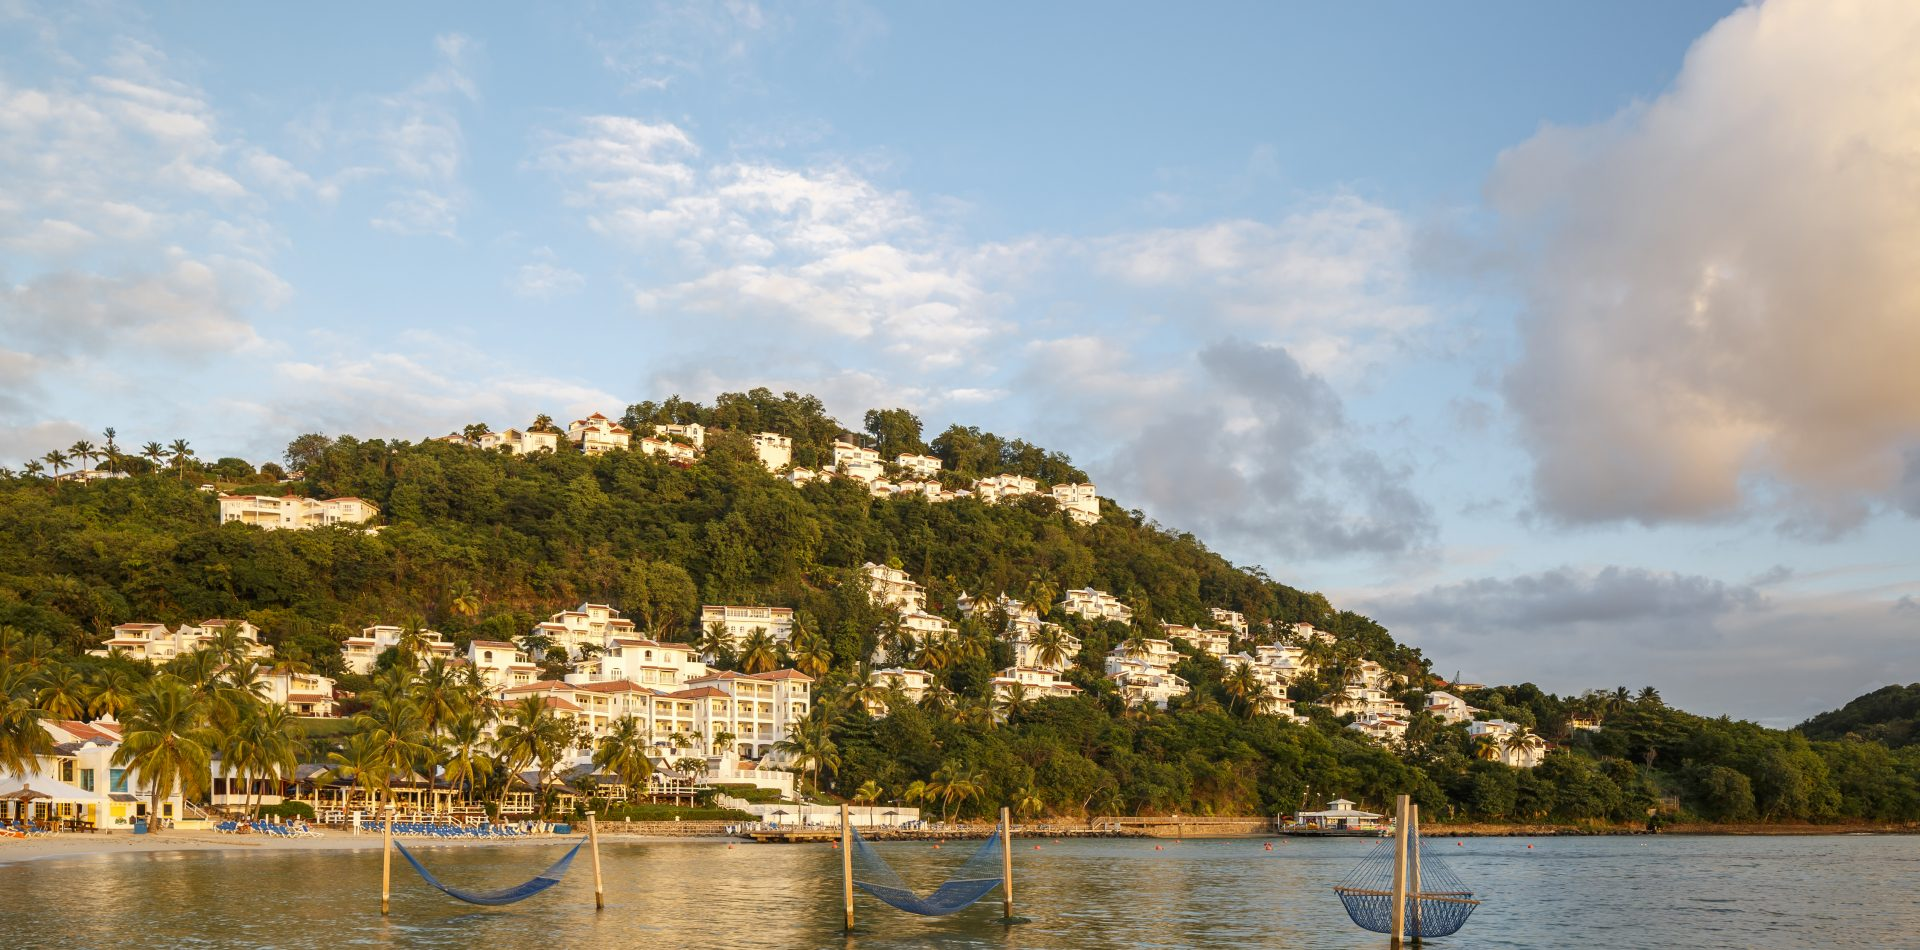 views of St Lucia island from the water